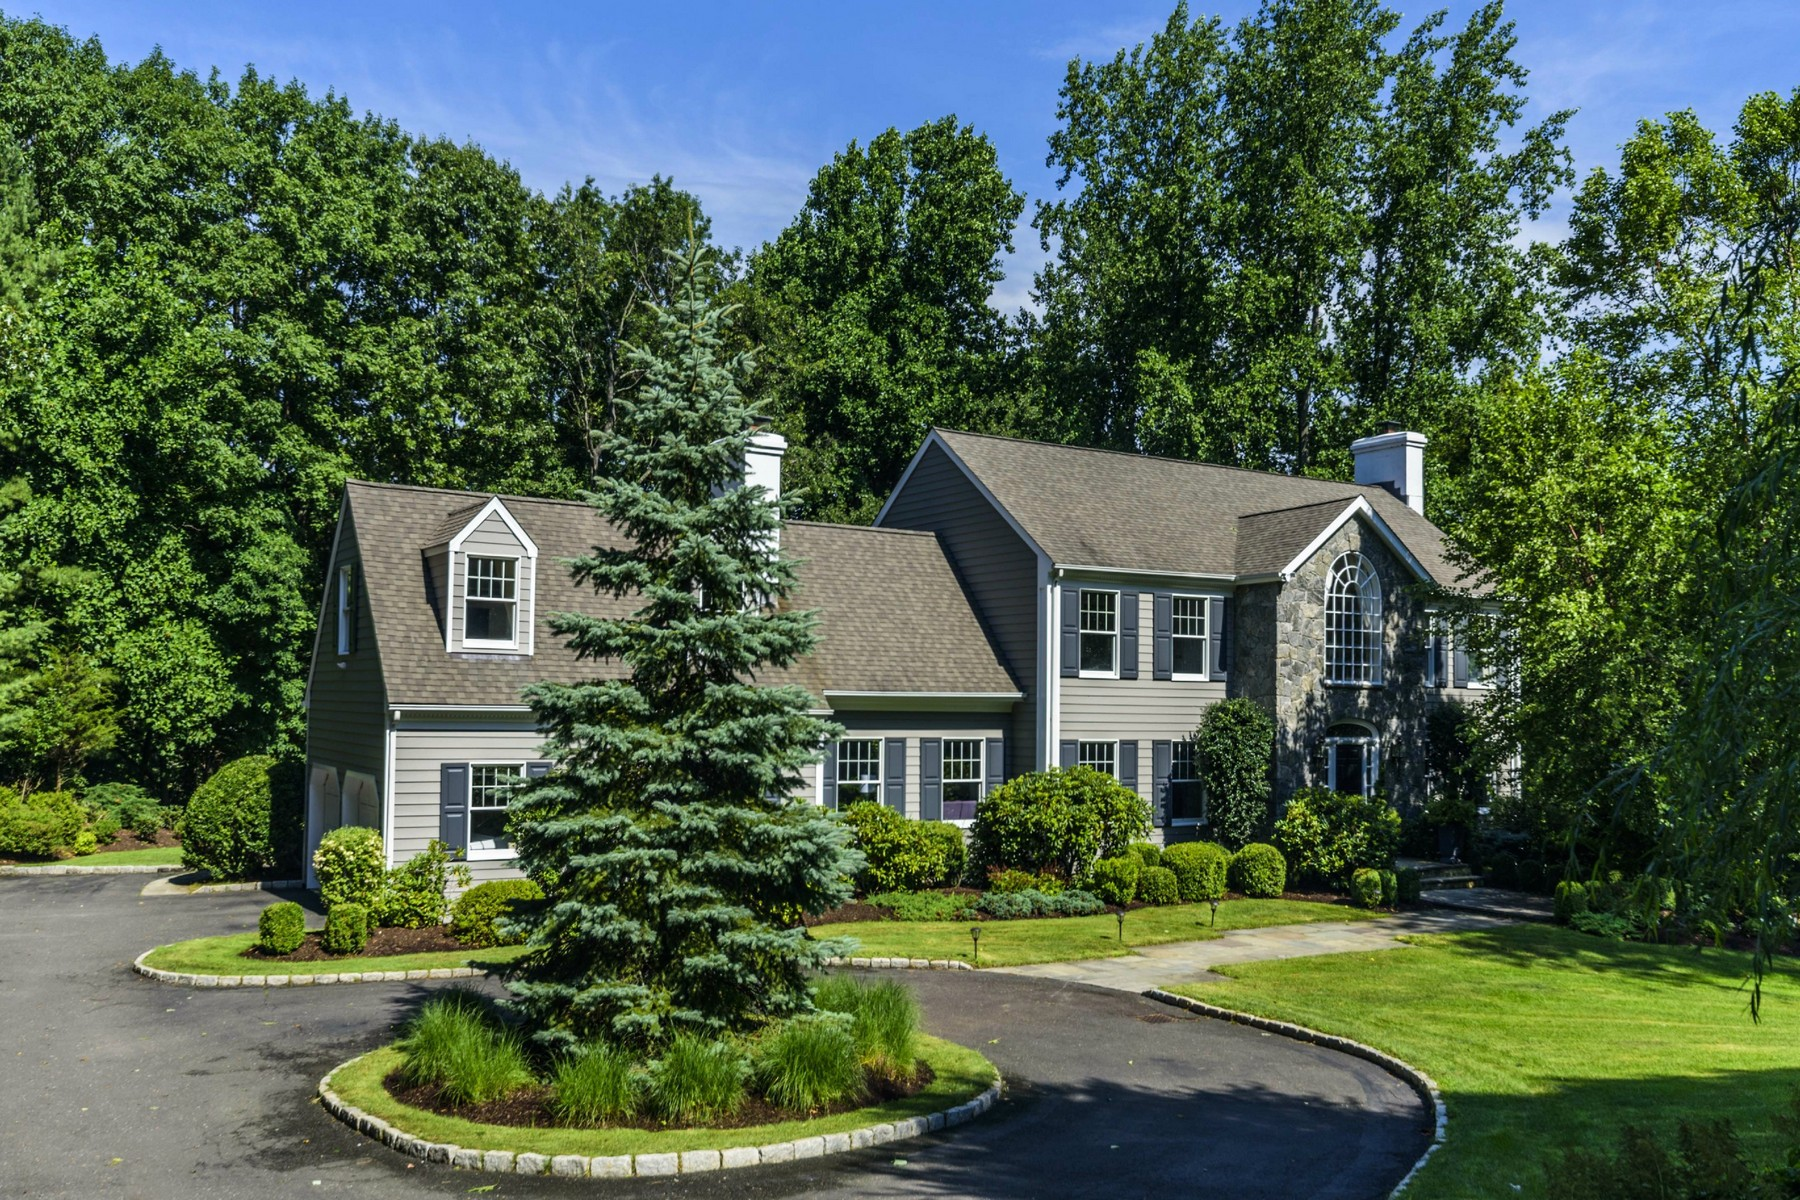 Single Family Home for Sale at Private, Gated Waterfront Community 7 Hilltop Road Norwalk, Connecticut, 06854 United States